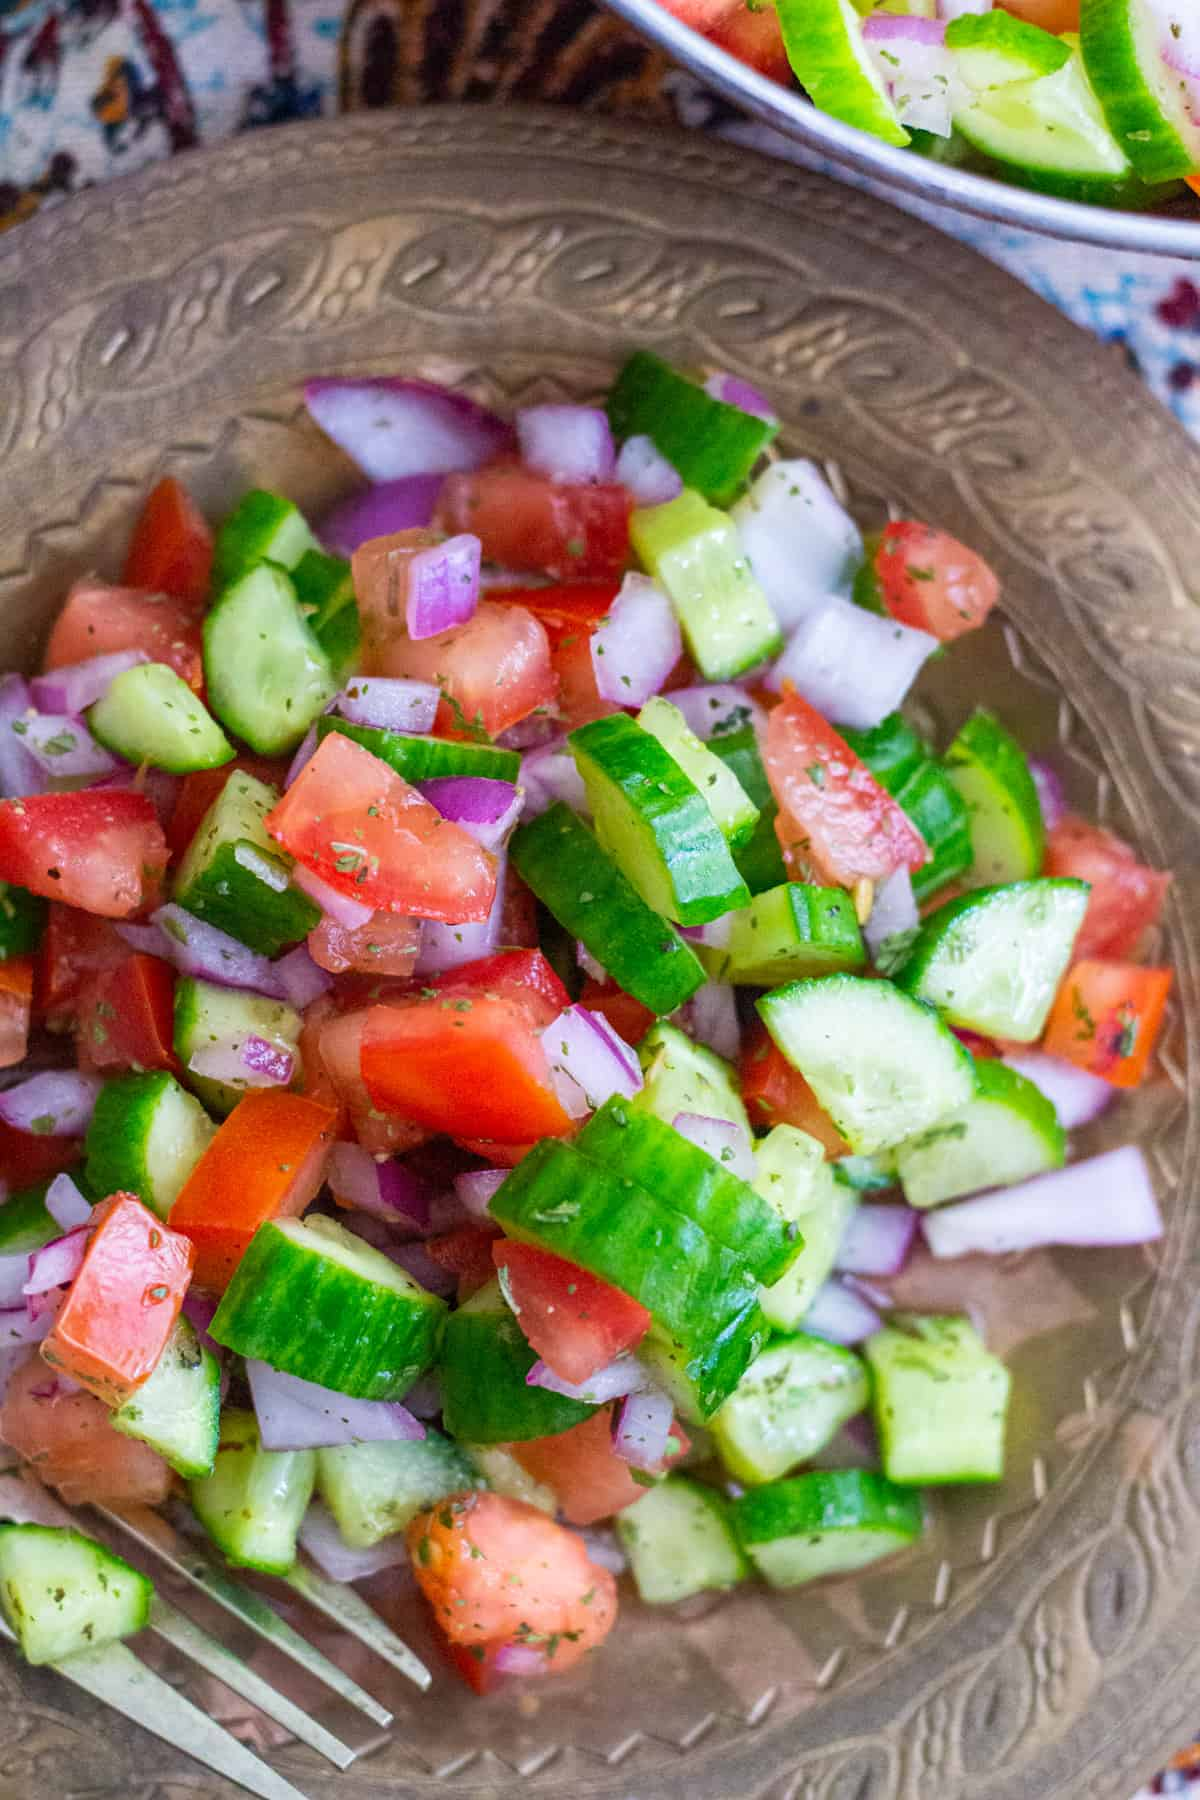 Plump tomatoes and fresh cucumbers go well with red onion. This gluten free, vegetarian salad is perfect with any rice dish.